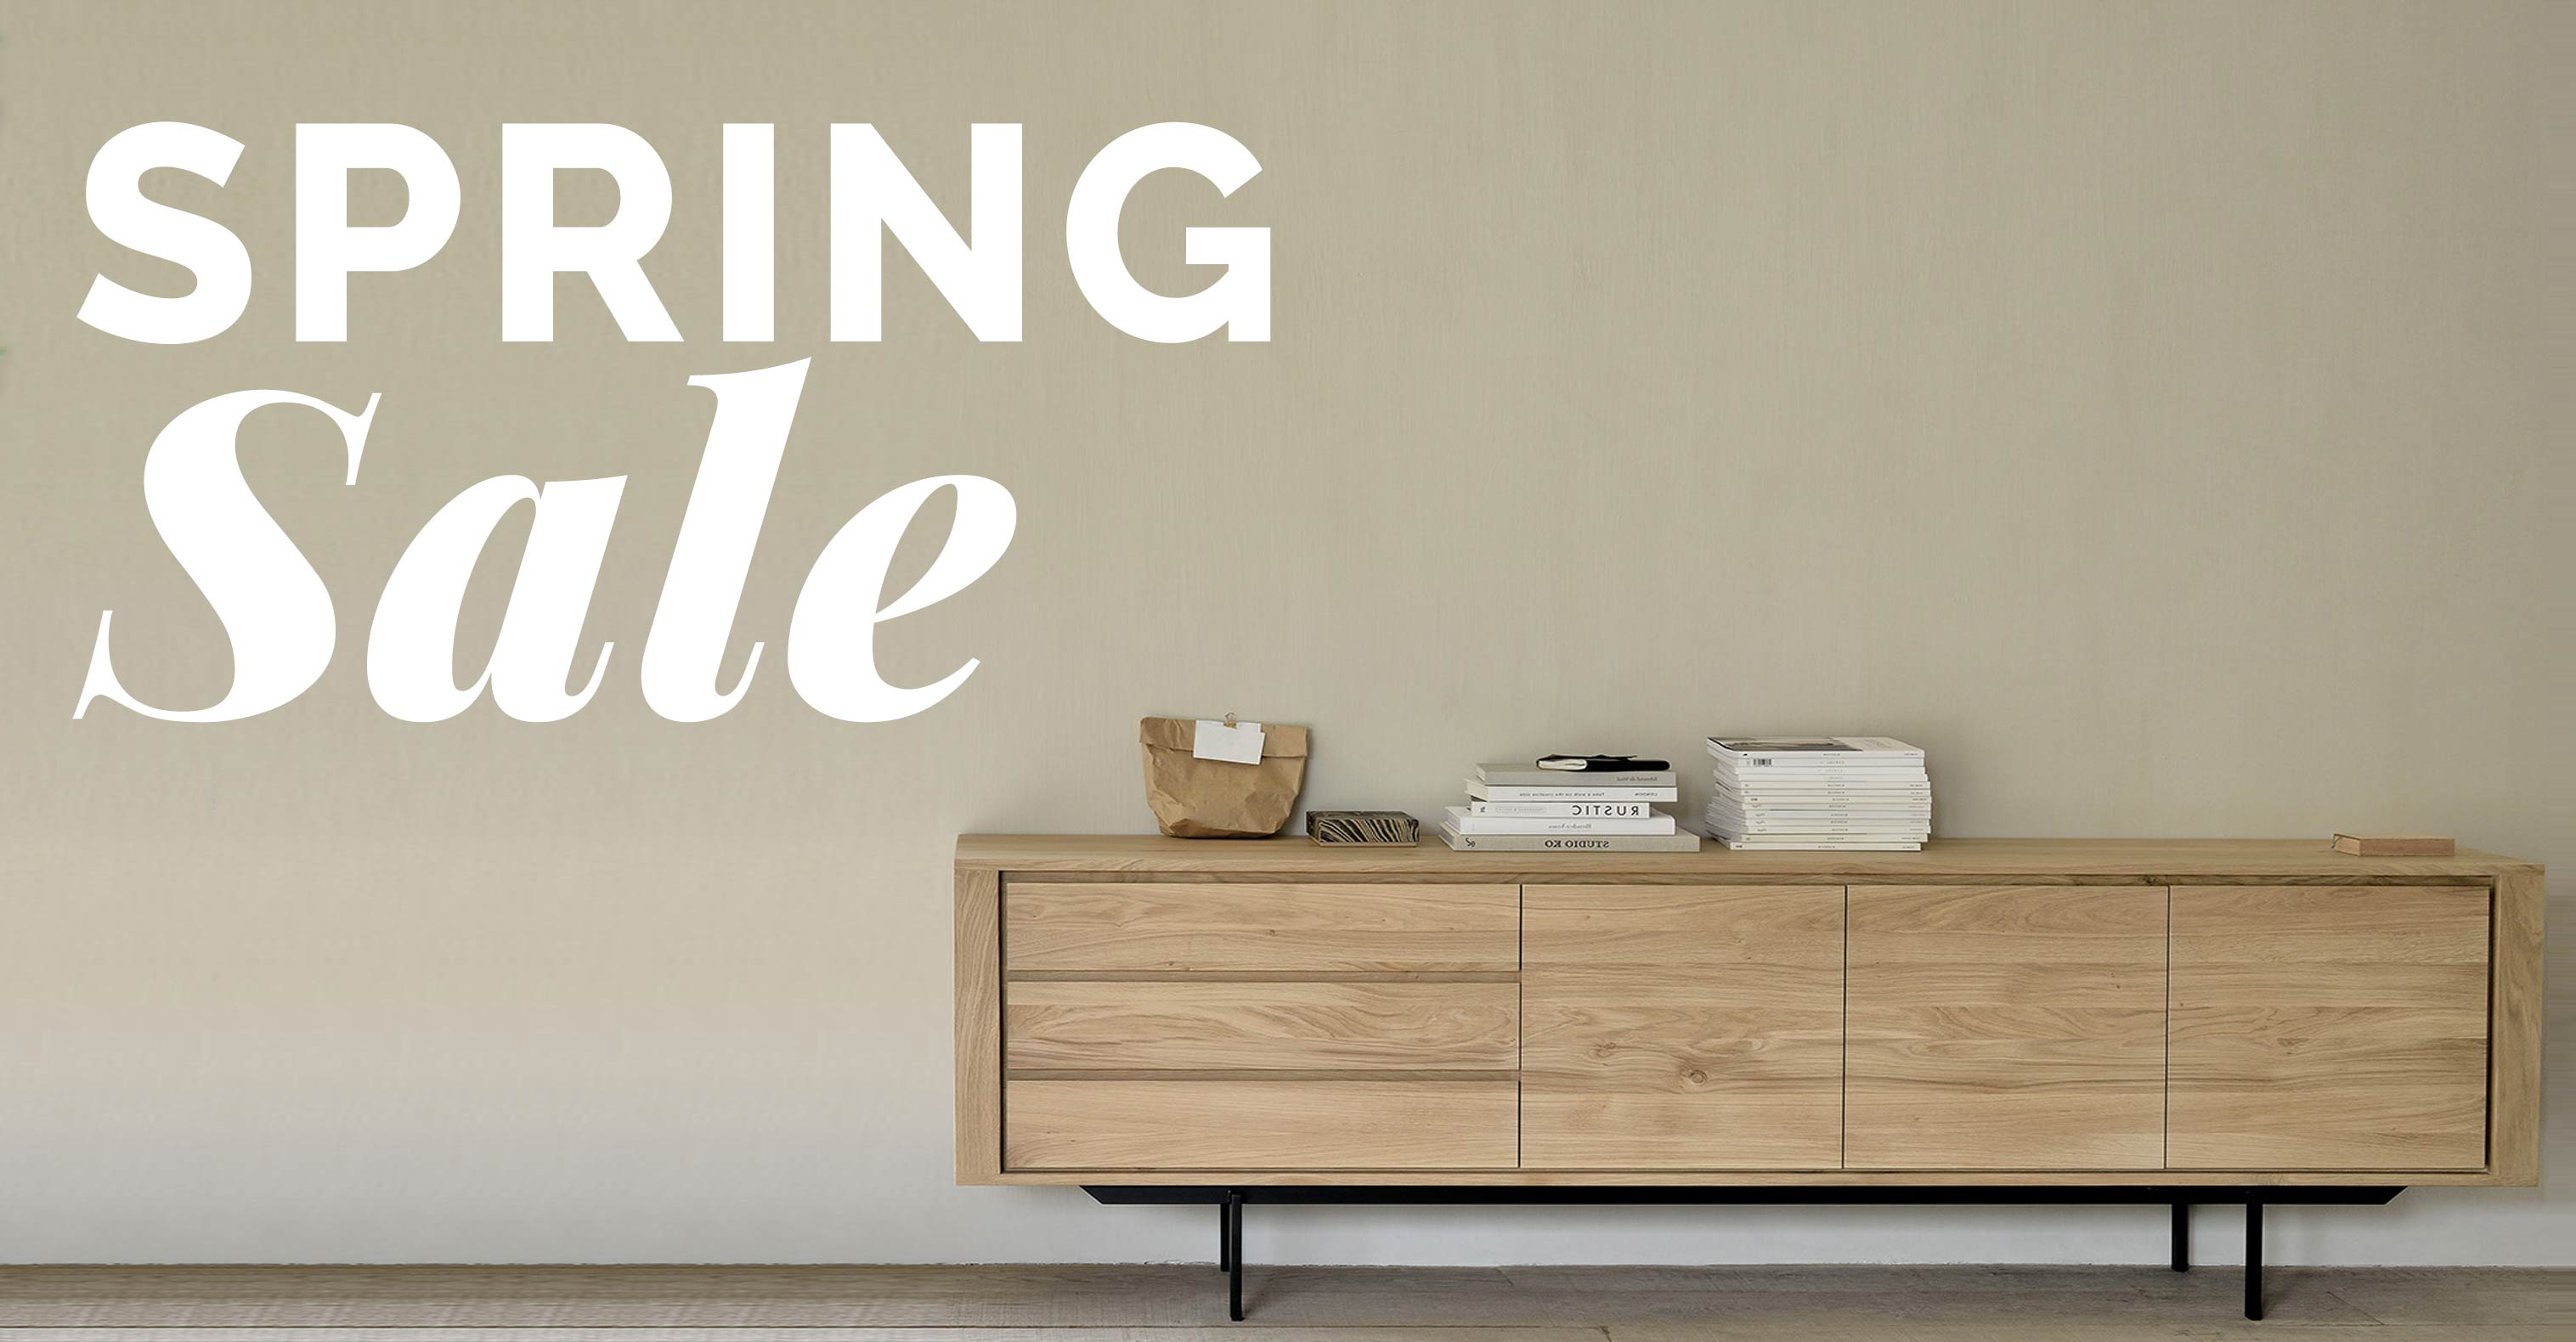 Adventures in Furniture's Spring Sale